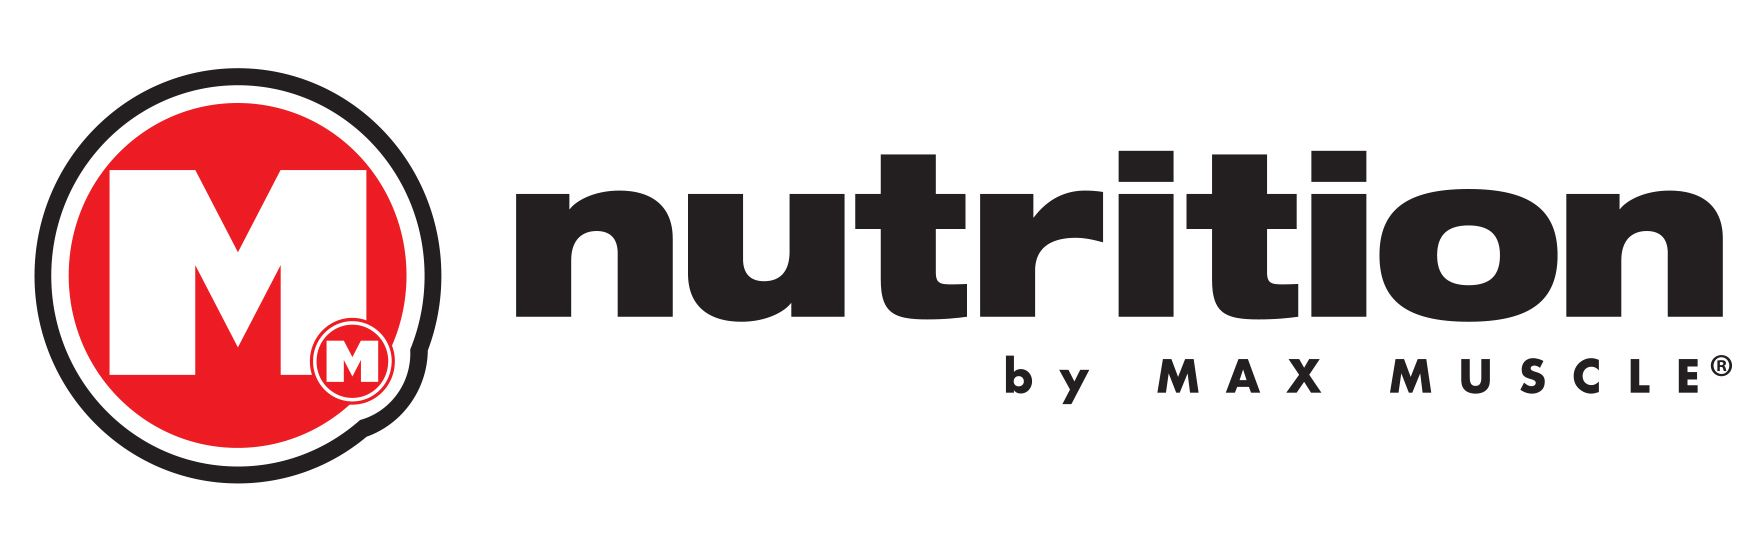 Max Muscle Sports Nutrition Logo